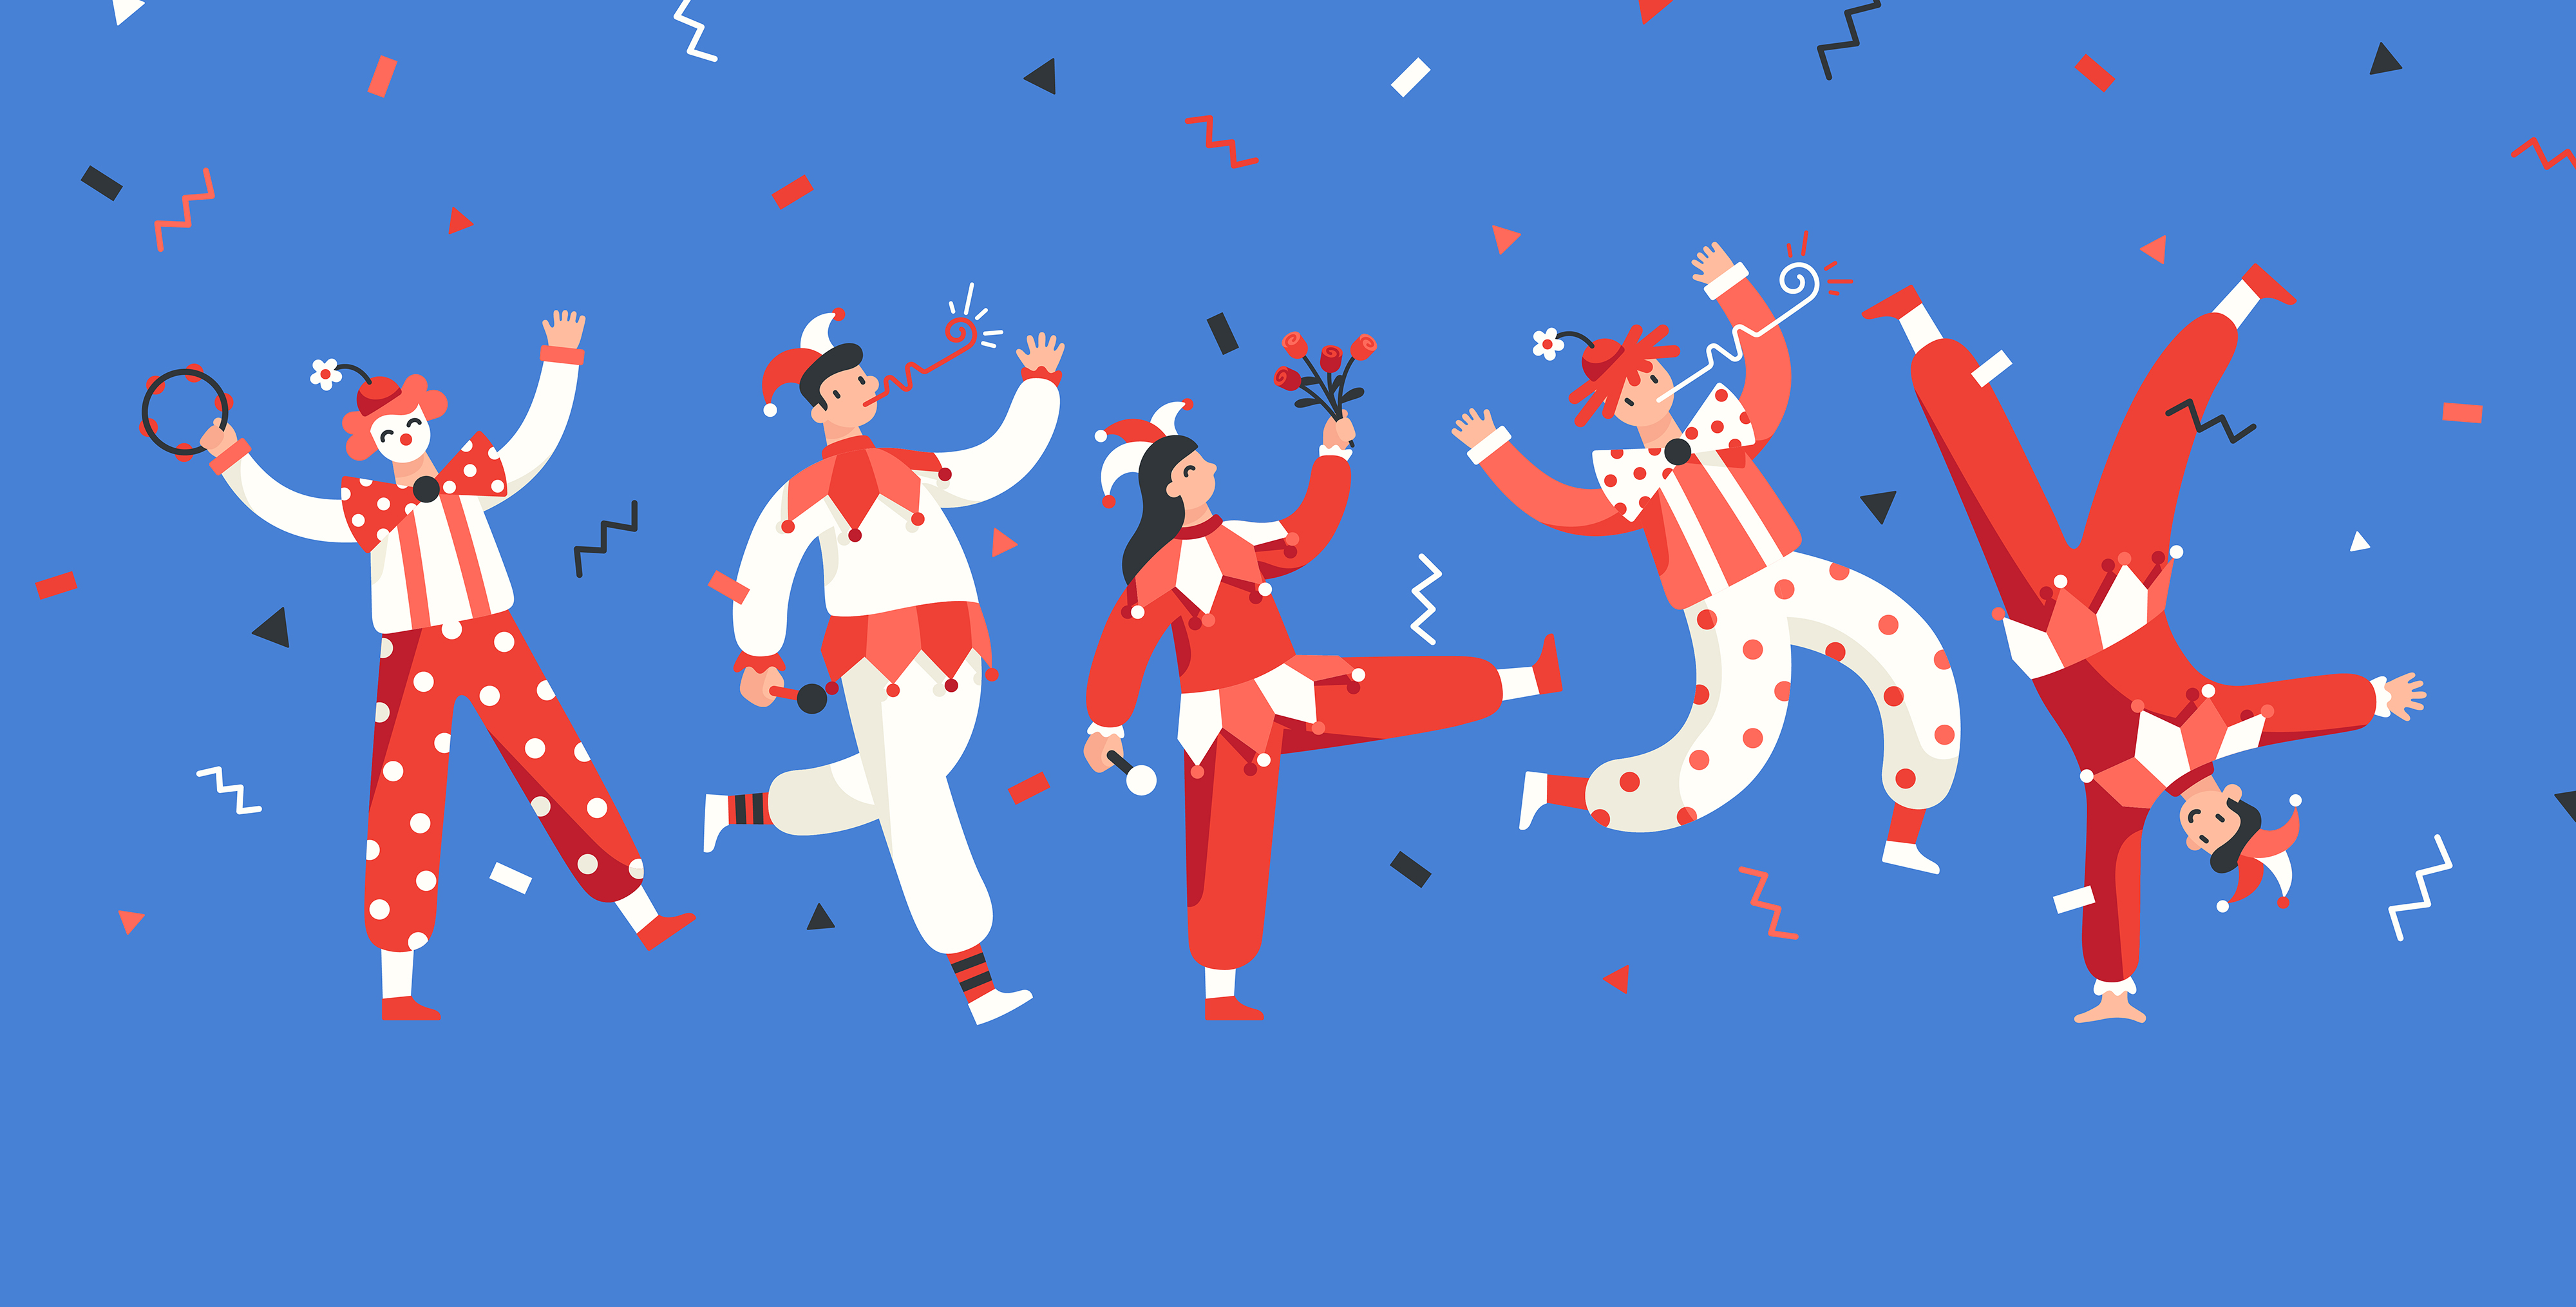 This image is an illustration of clowns and jesters created for Google Play, celebrating Germany's carnival season and Rose Monday